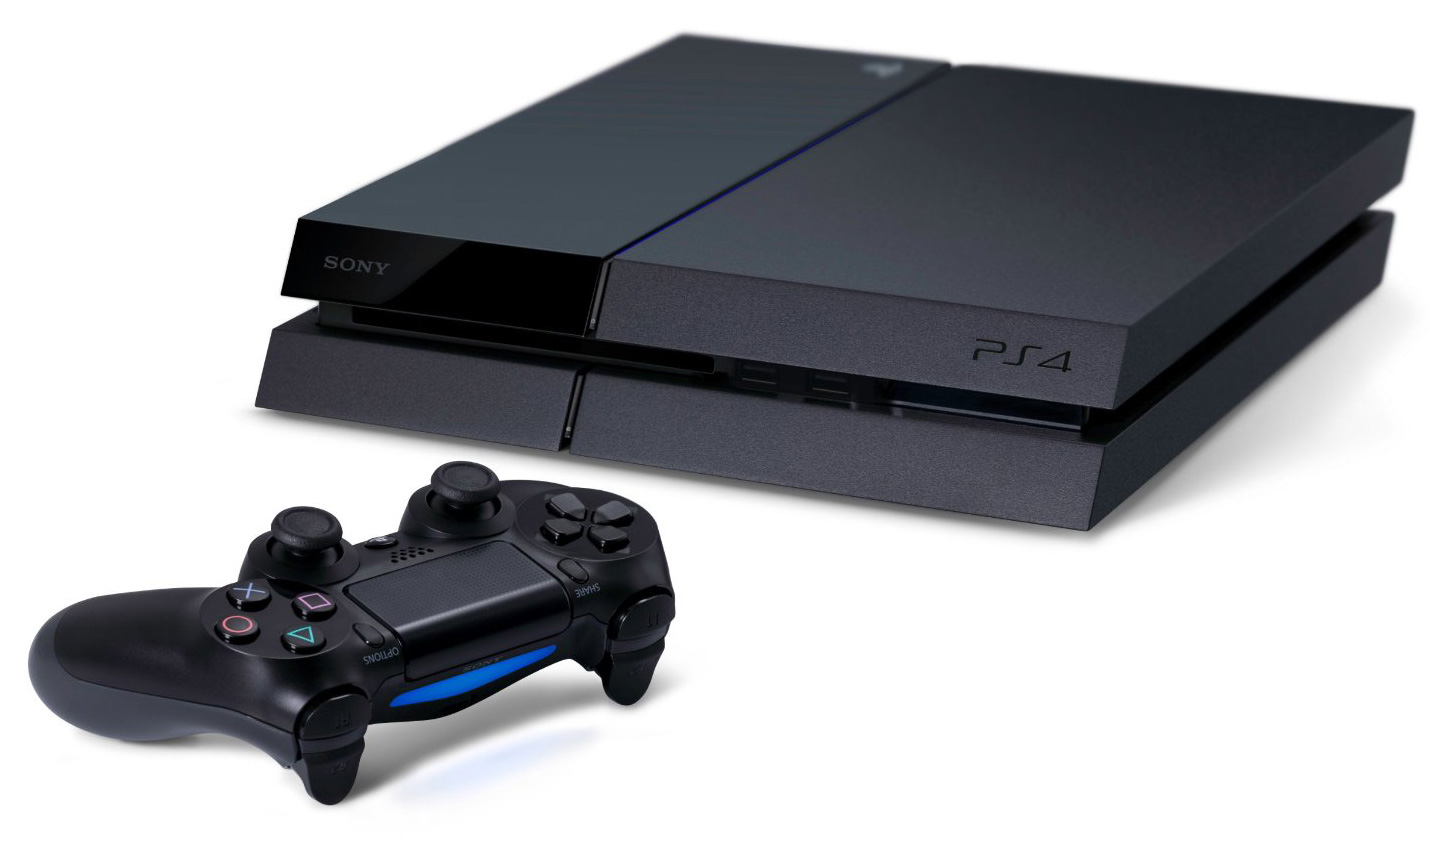 Sony Ps4 Price Drops To 350 In The Us 429 In Canada Ars Technica